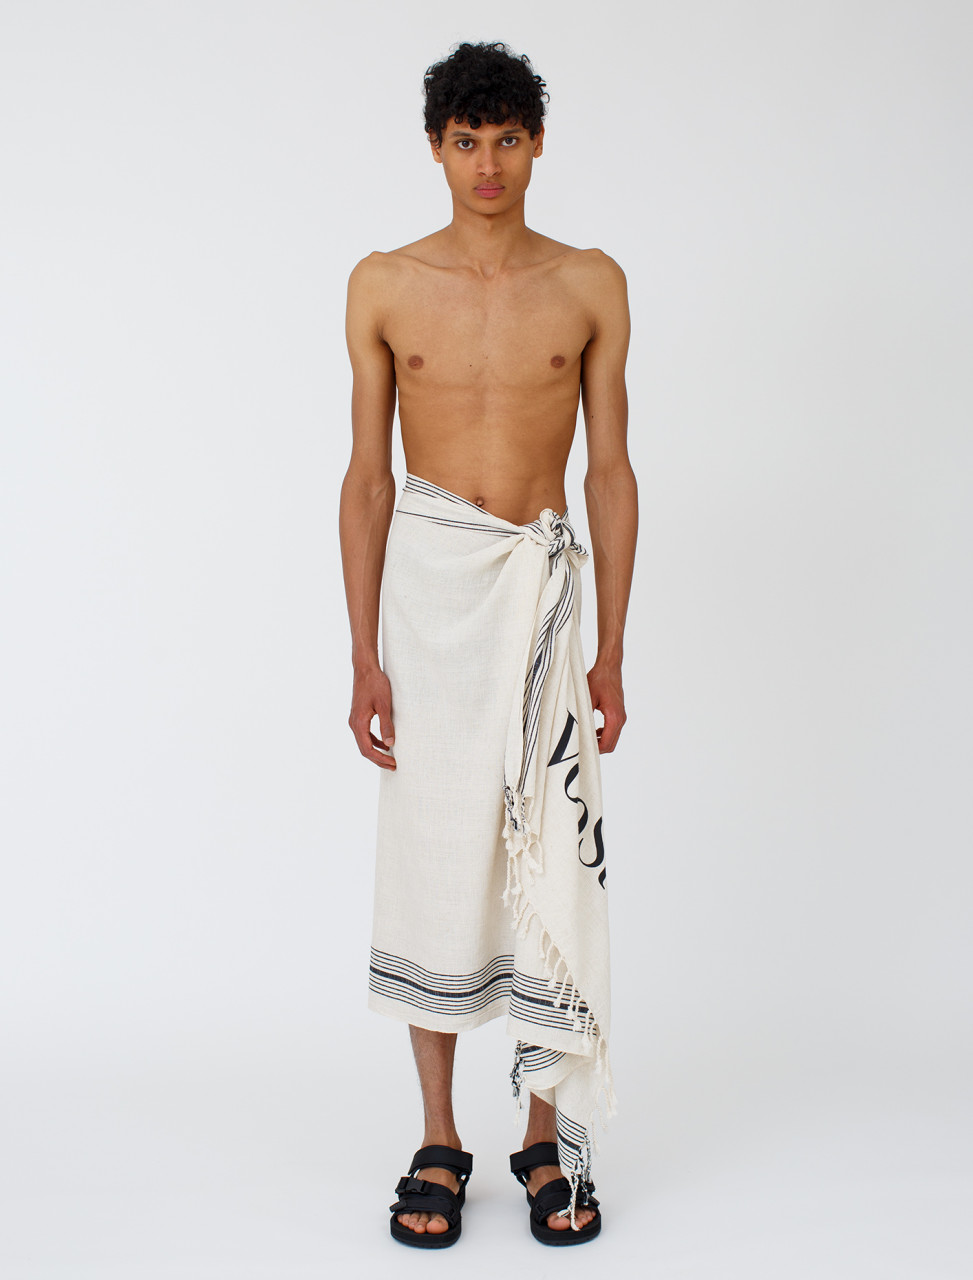 ADISH x Voo Store Beach Towel